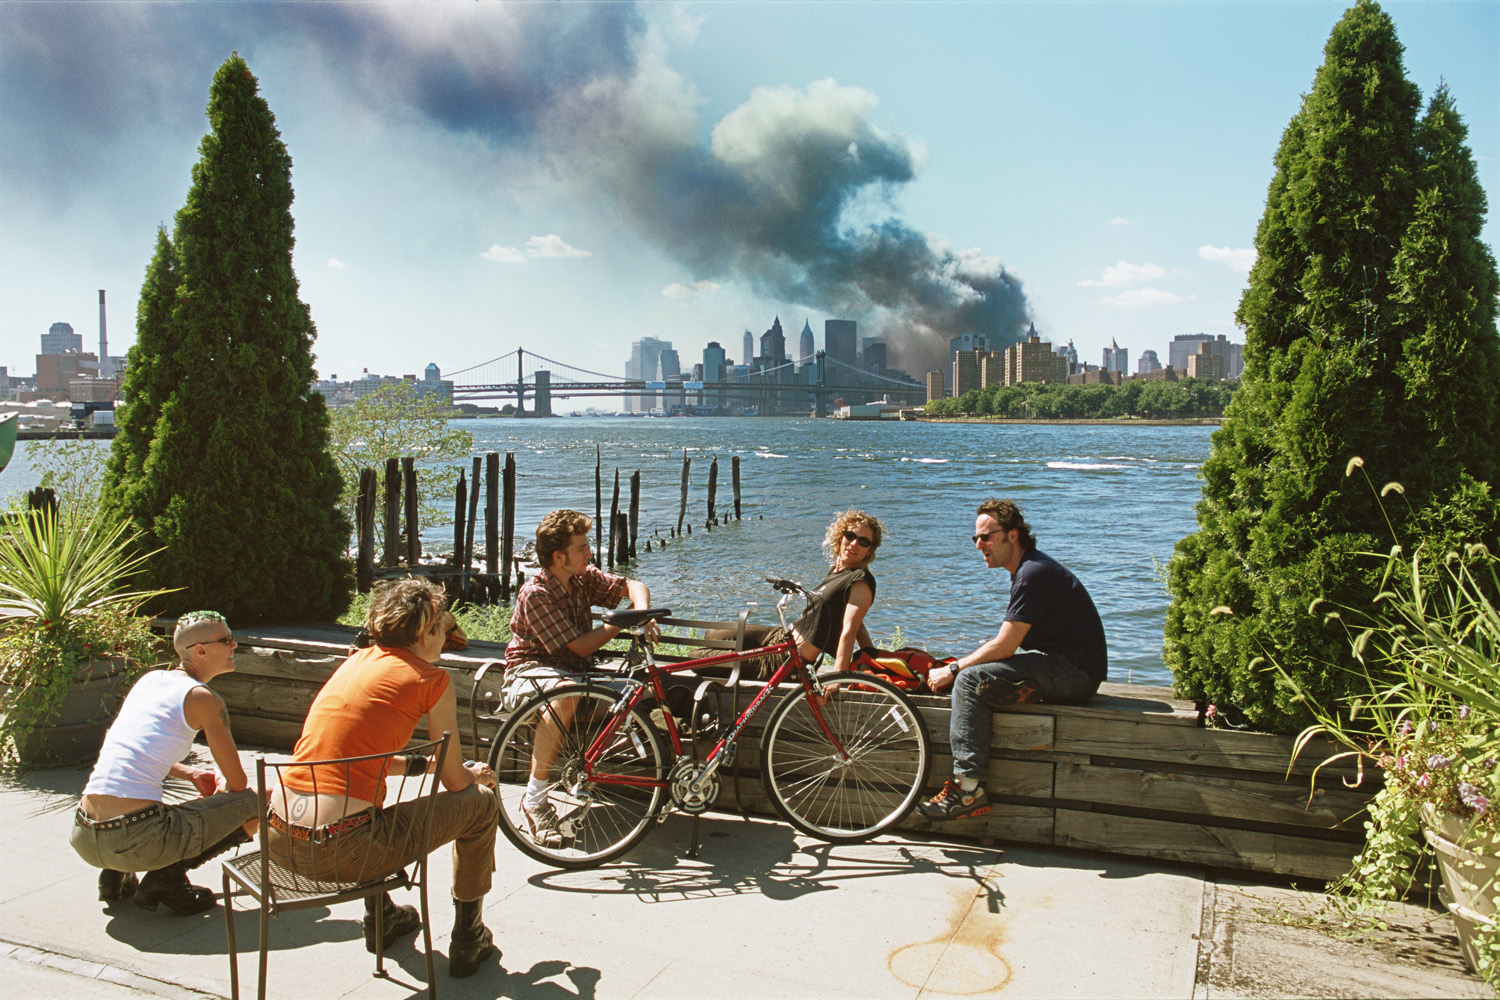 View of Manhattan from Williamsburg Brooklyn 11 September 2001. © Thomas Hoepker. Courtesy: Johanna Breede, PHOTOKUNST.